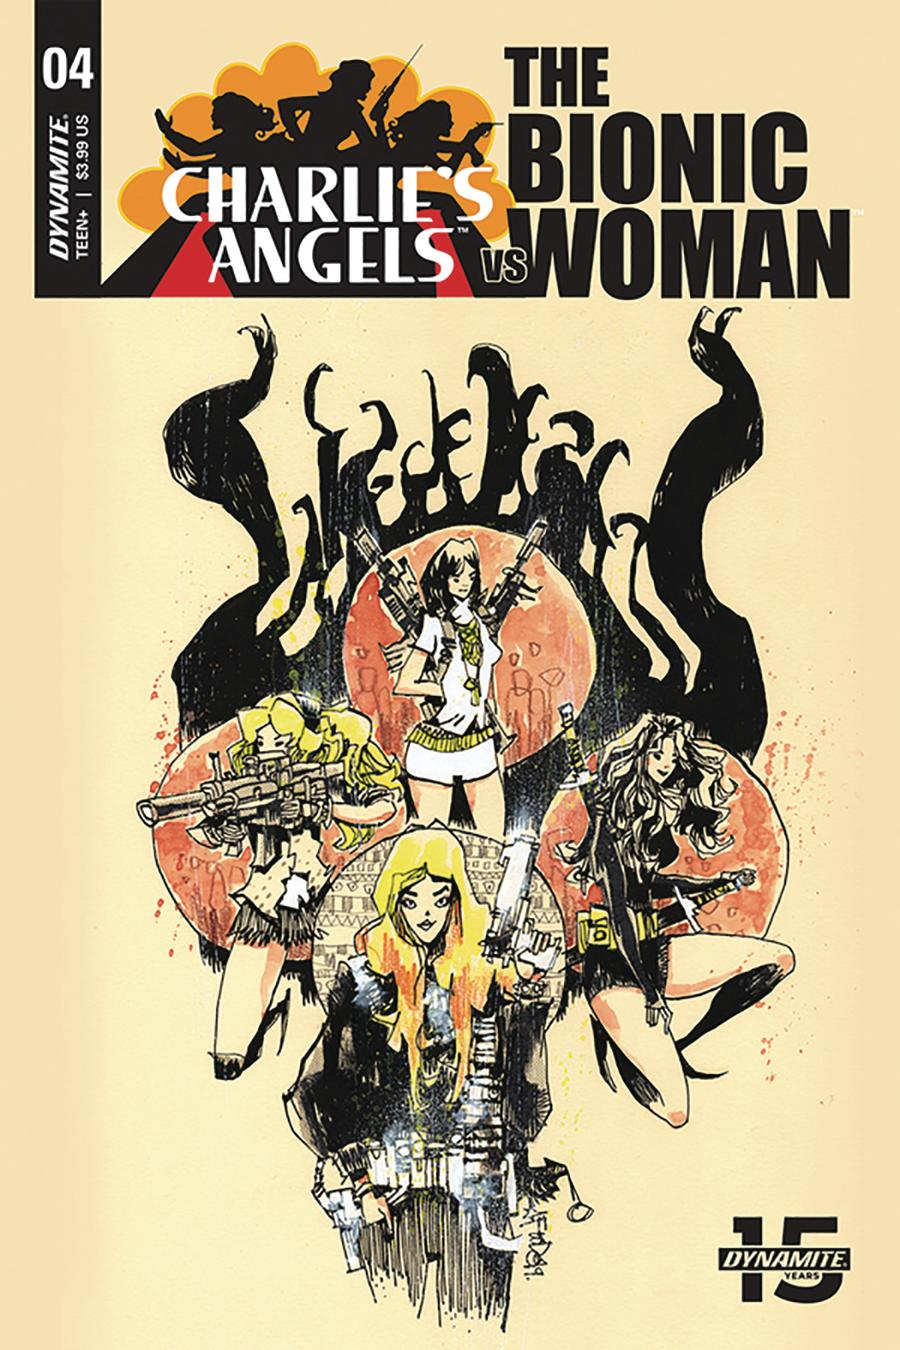 Charlies Angels vs The Bionic Woman #4 Cover B Variant Jim Mahfood Cover